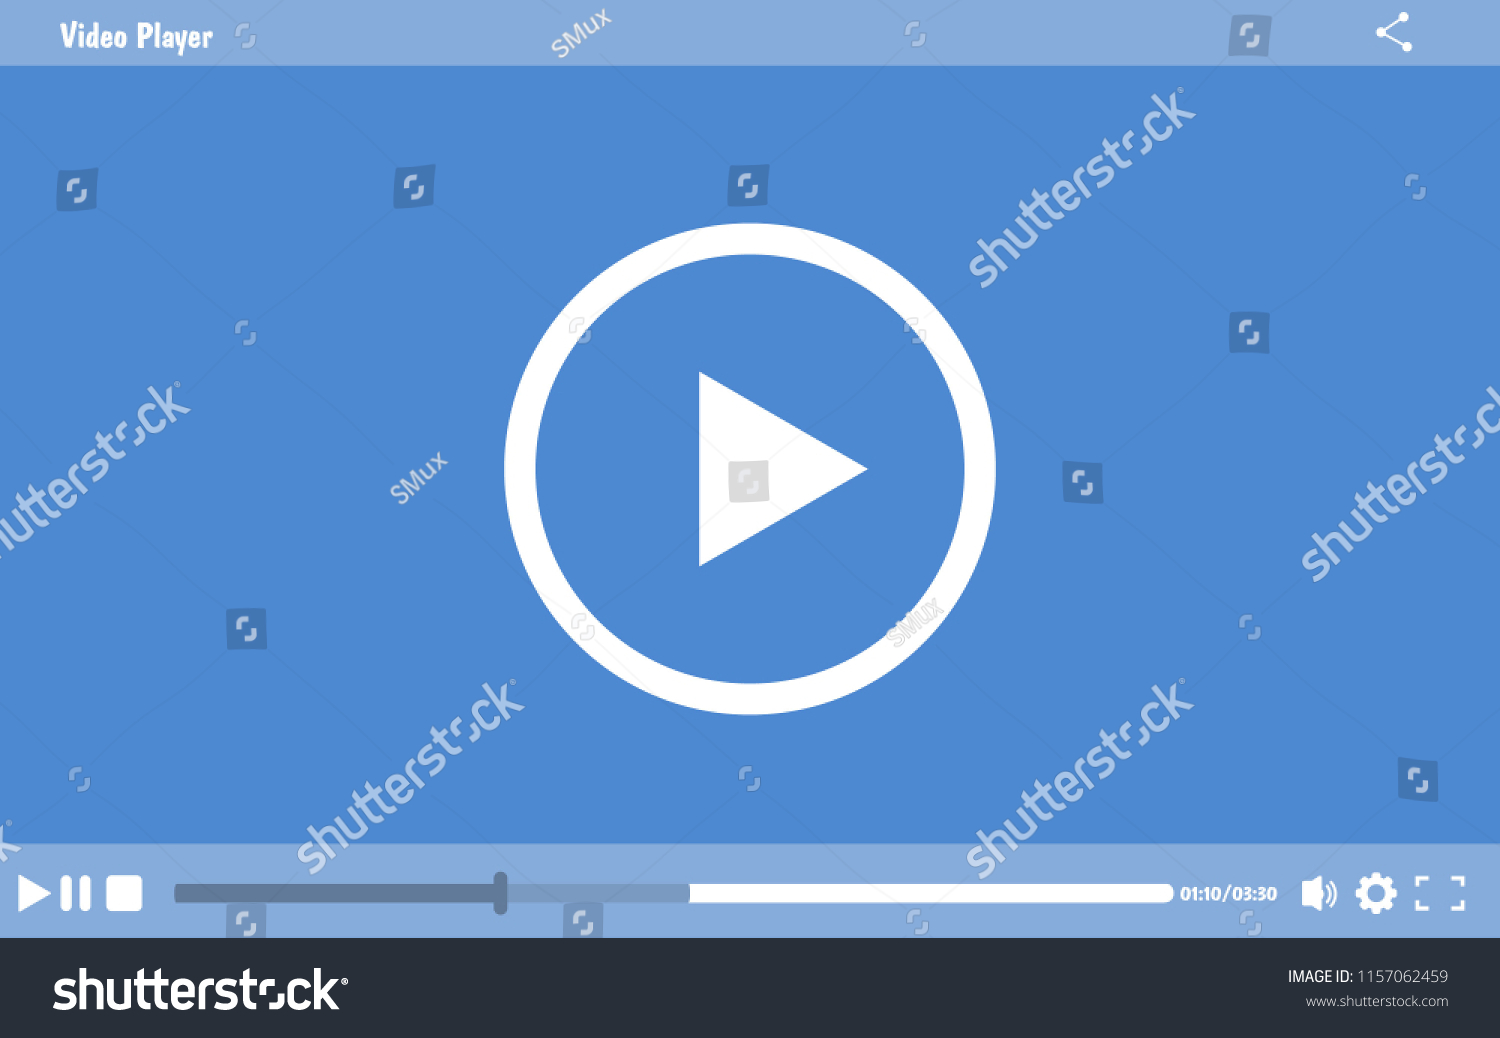 Media Player Design Modern Video Player Stock Vector